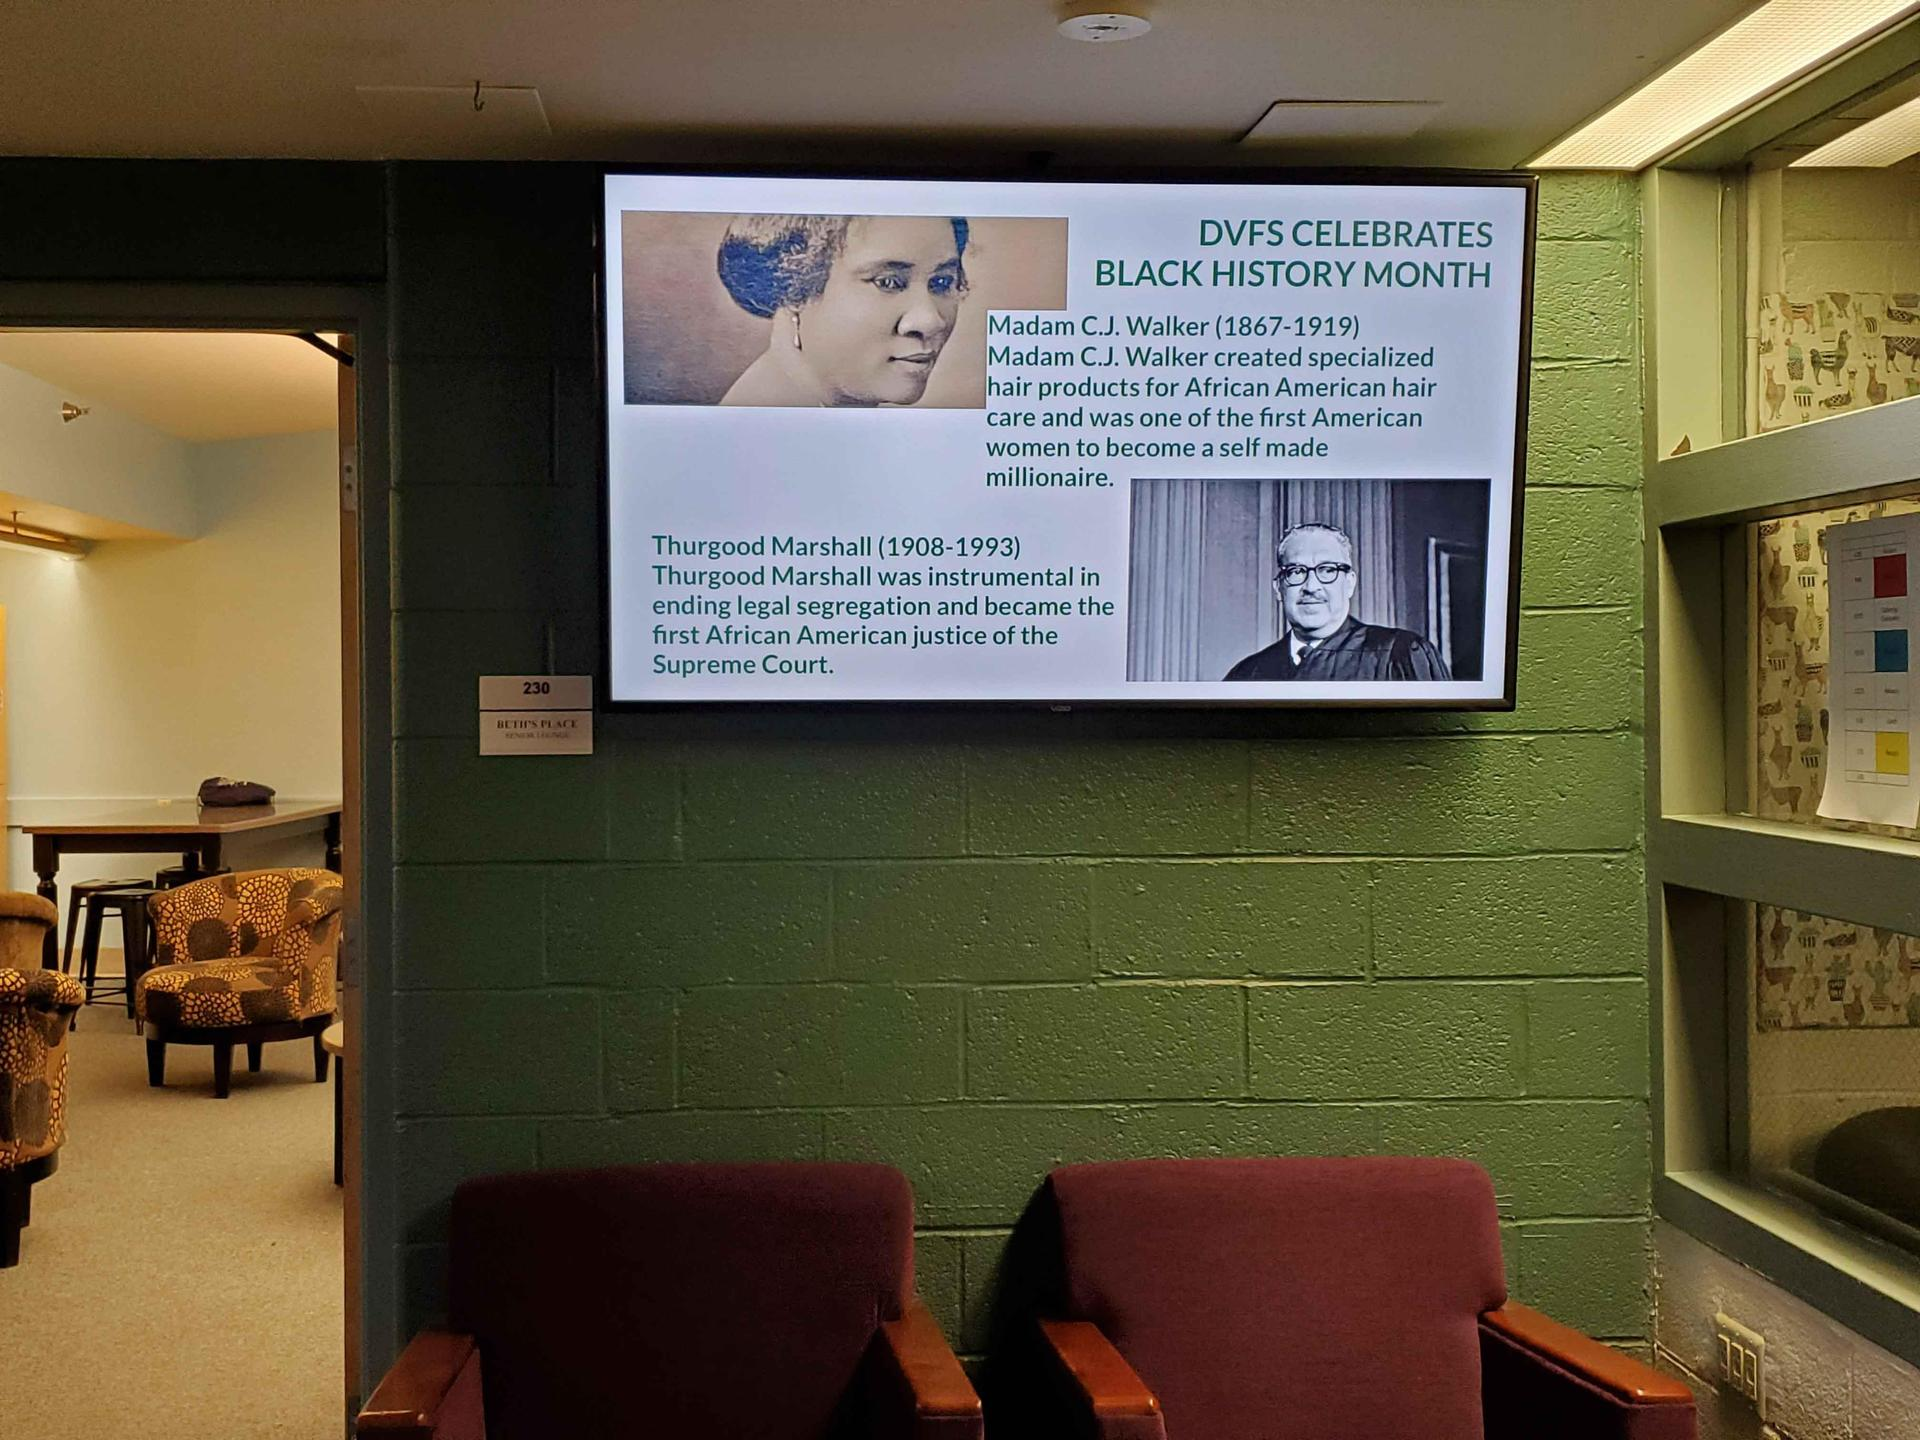 Black History Month slides